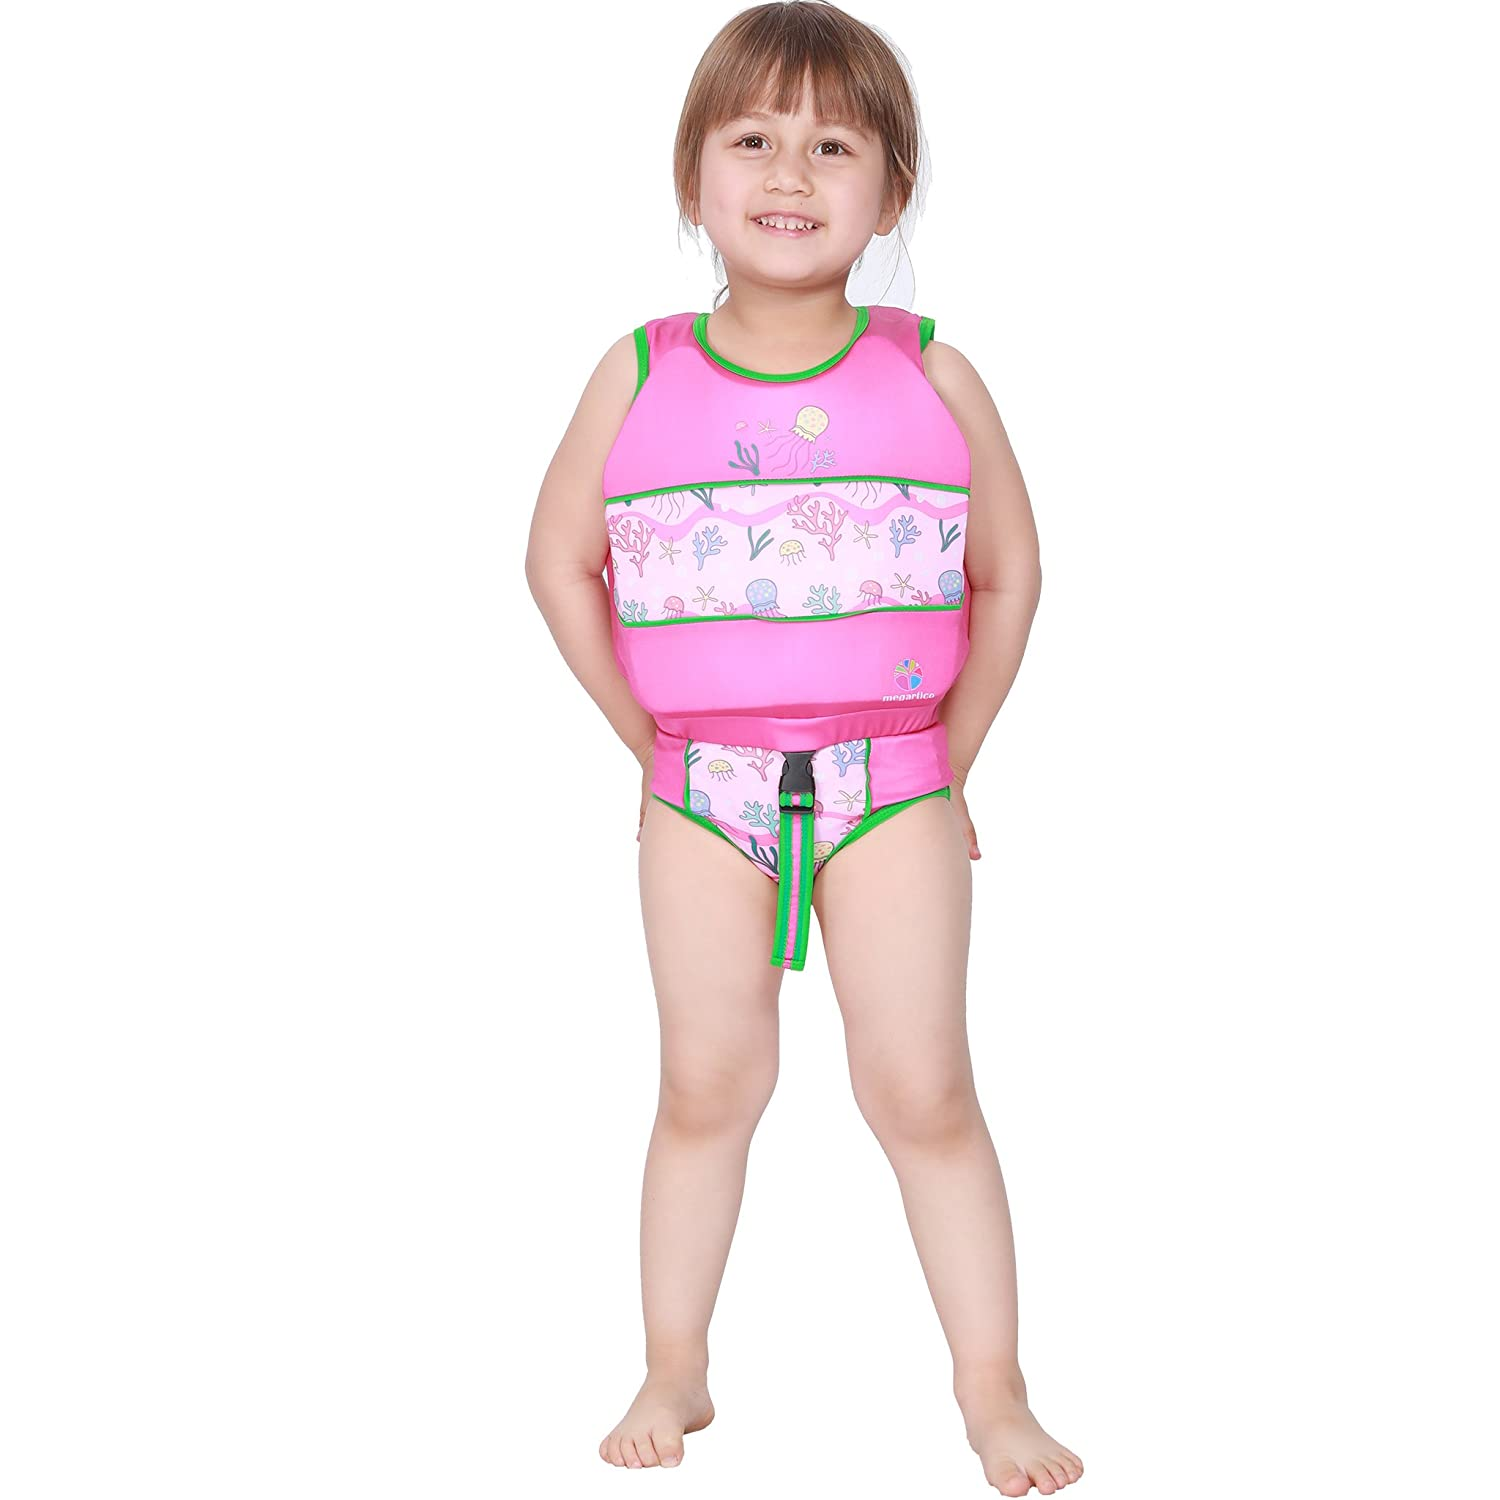 Q 2 Pcs Pack Kids Swimwear and Swimming Vest Trainer Life Jacket Combo with Adjustable Safety Buckle and Back Zipper M MAJOR